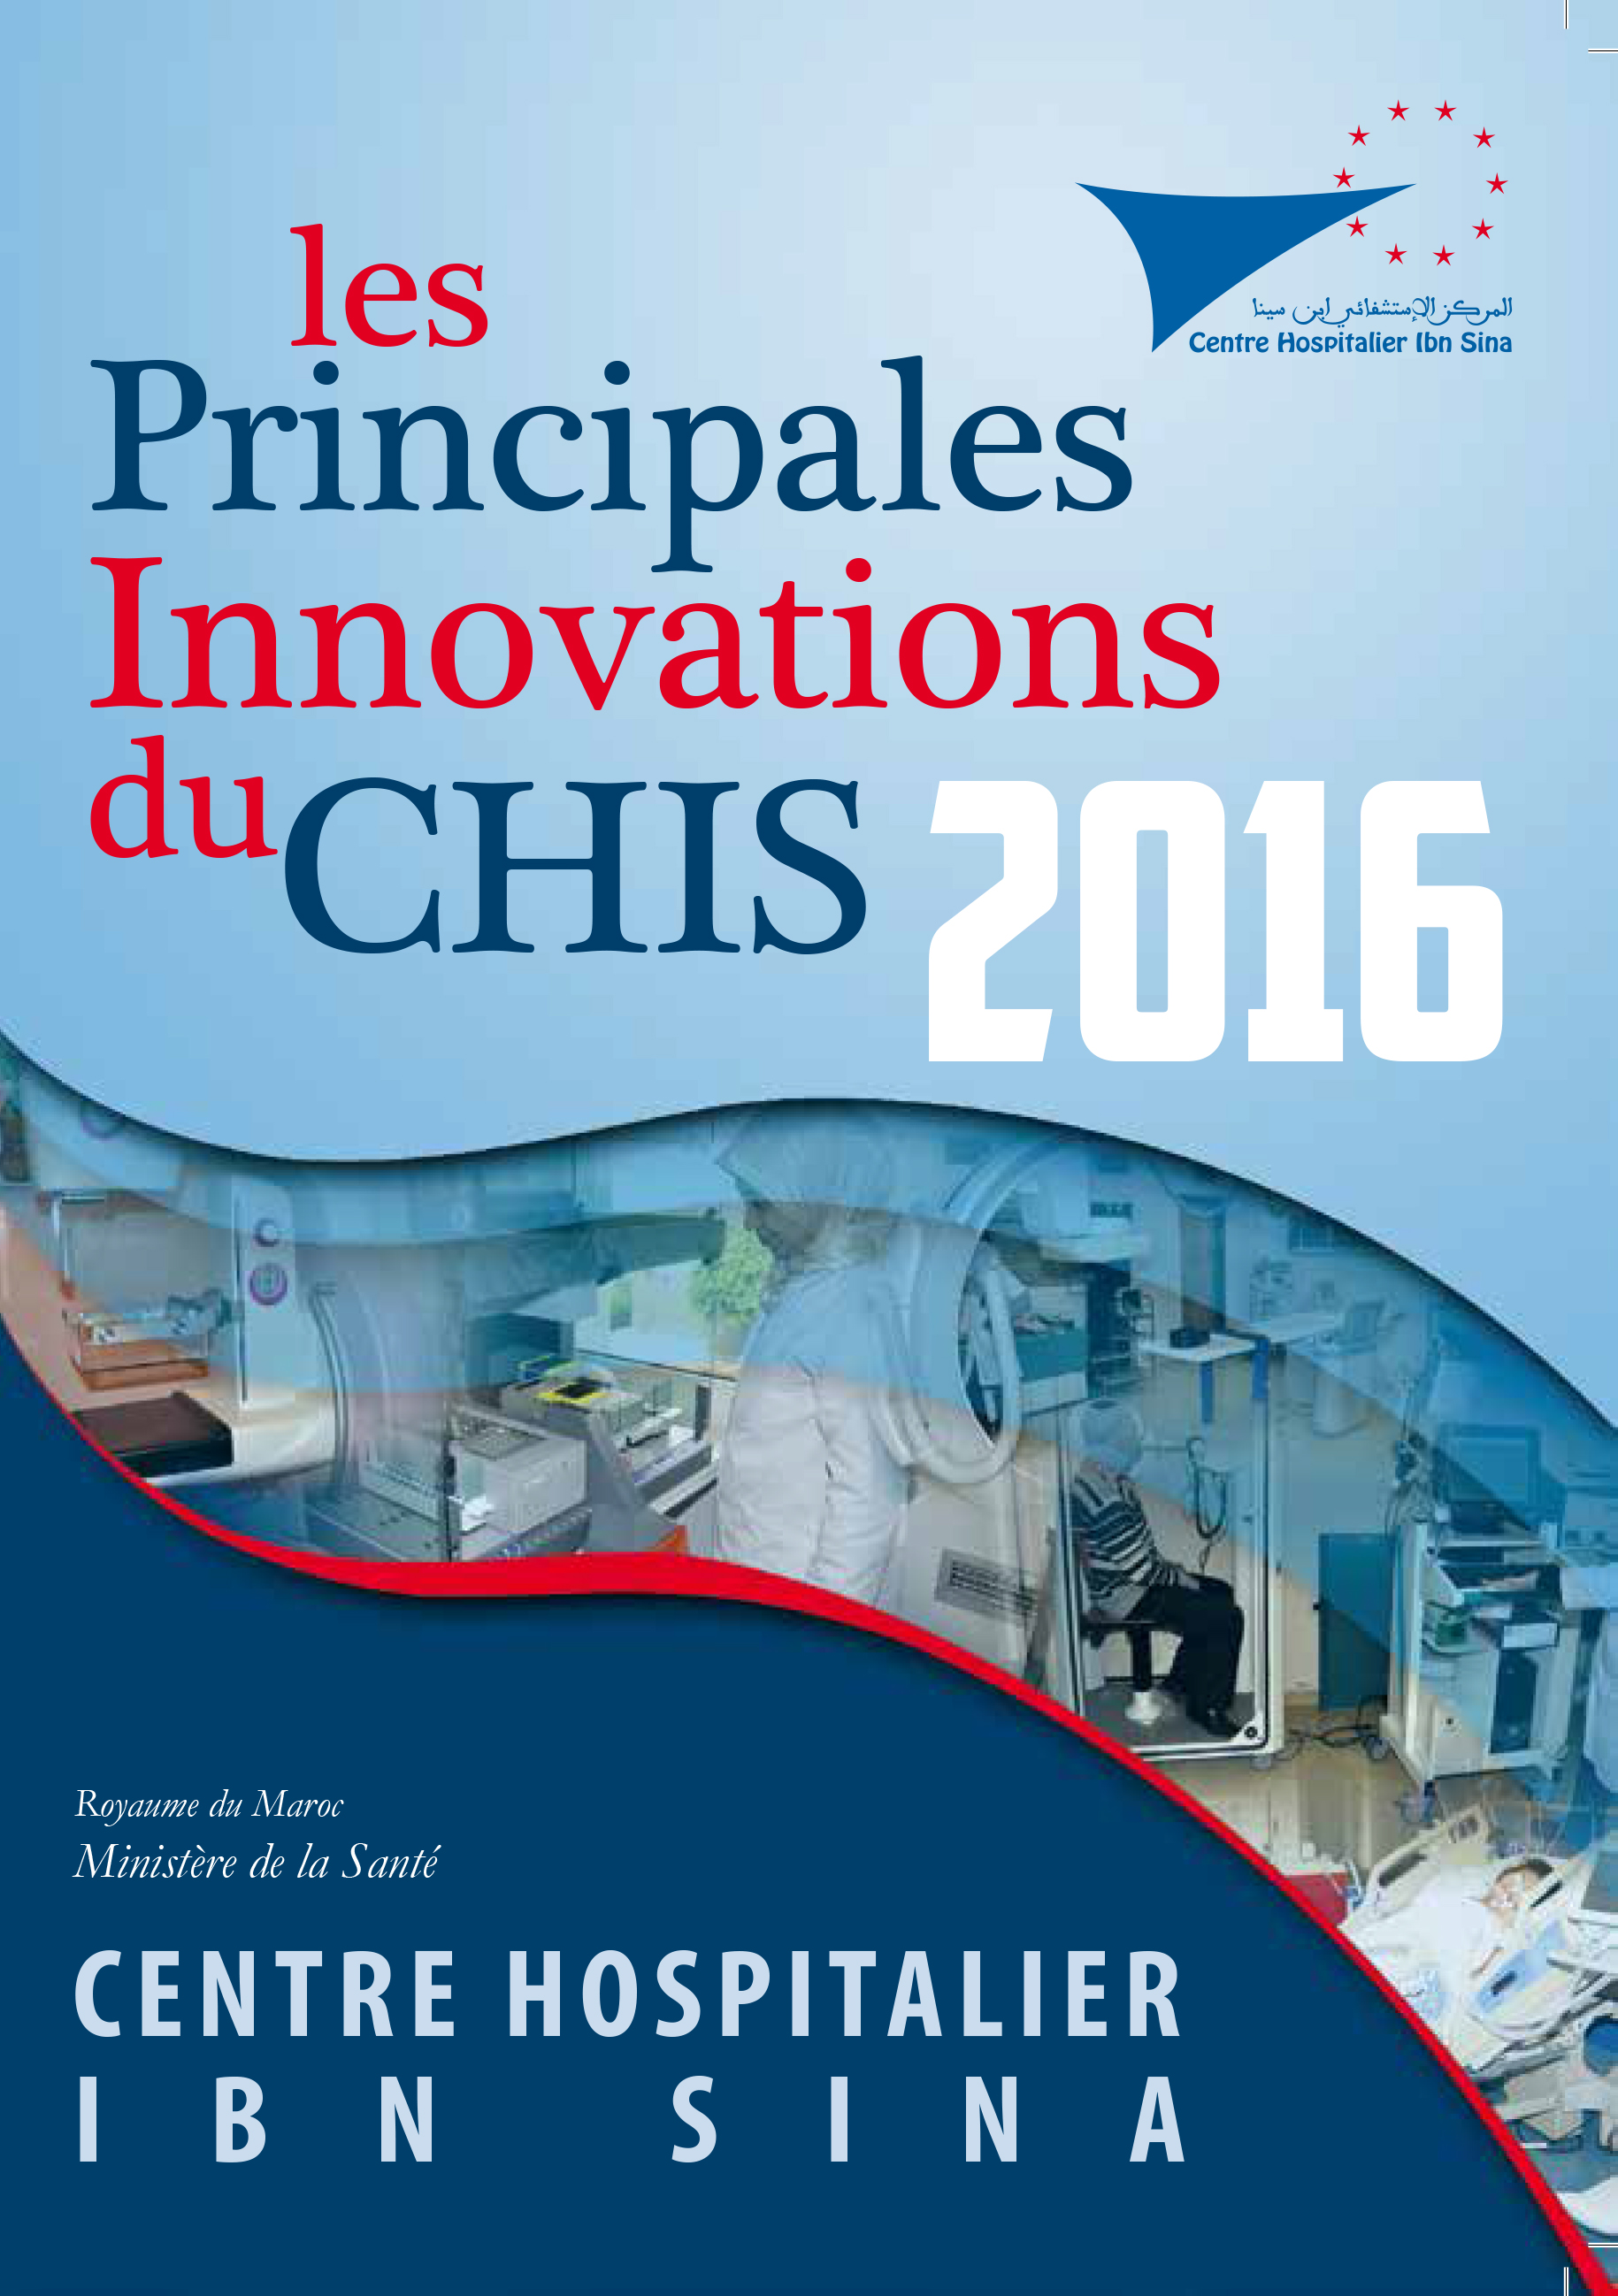 Les Principales Innovations du CHIS 2016